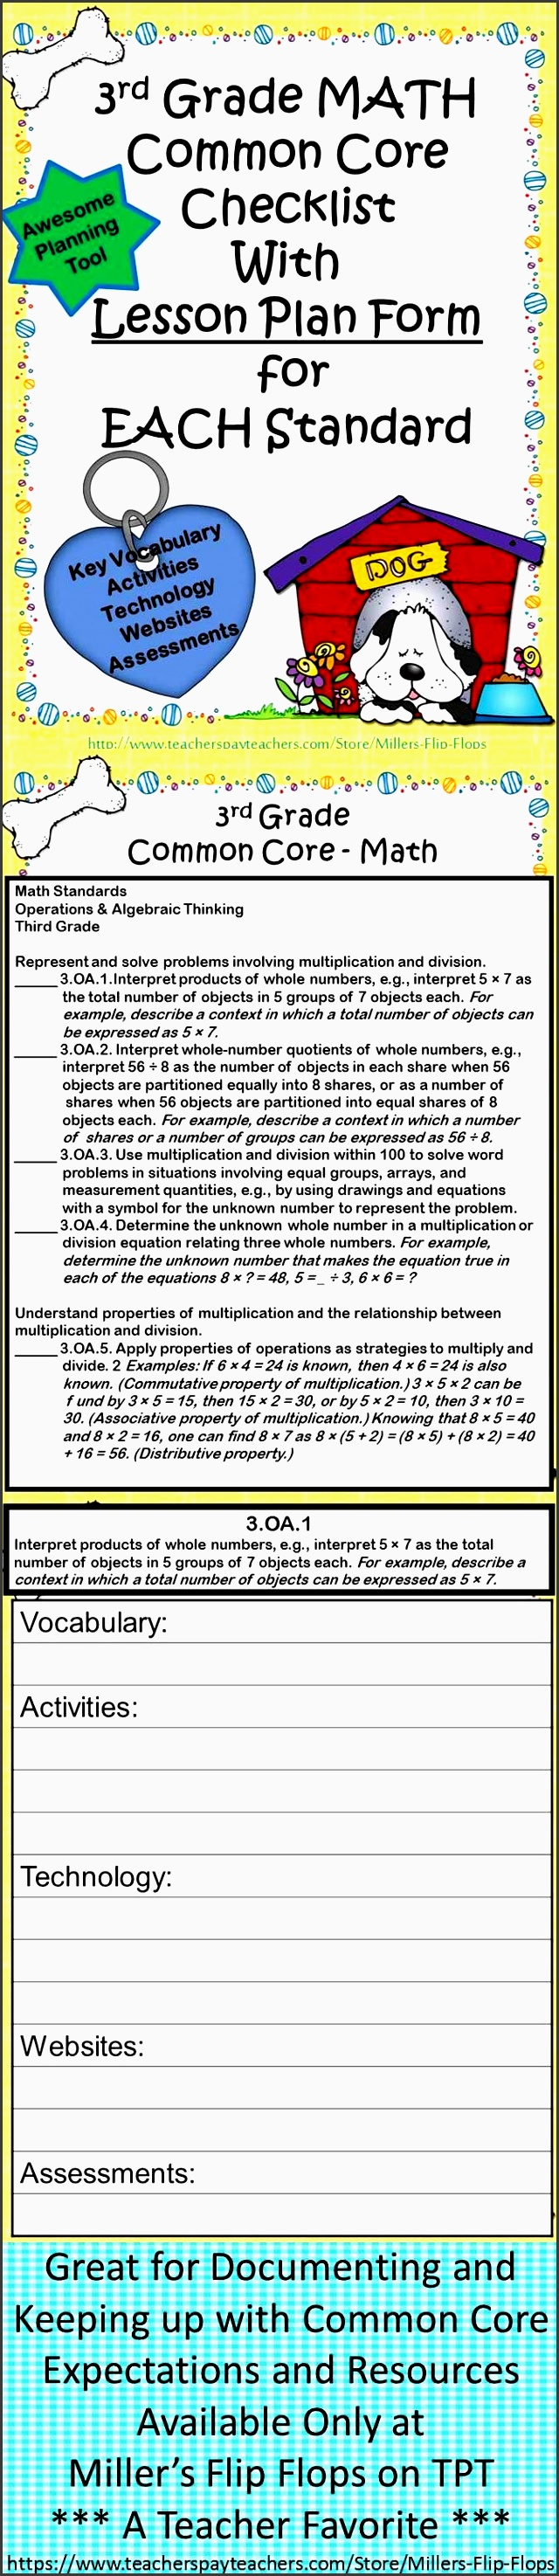 3rd grade math mon core checklists lesson planning form fun dog theme lesson plan formatlesson